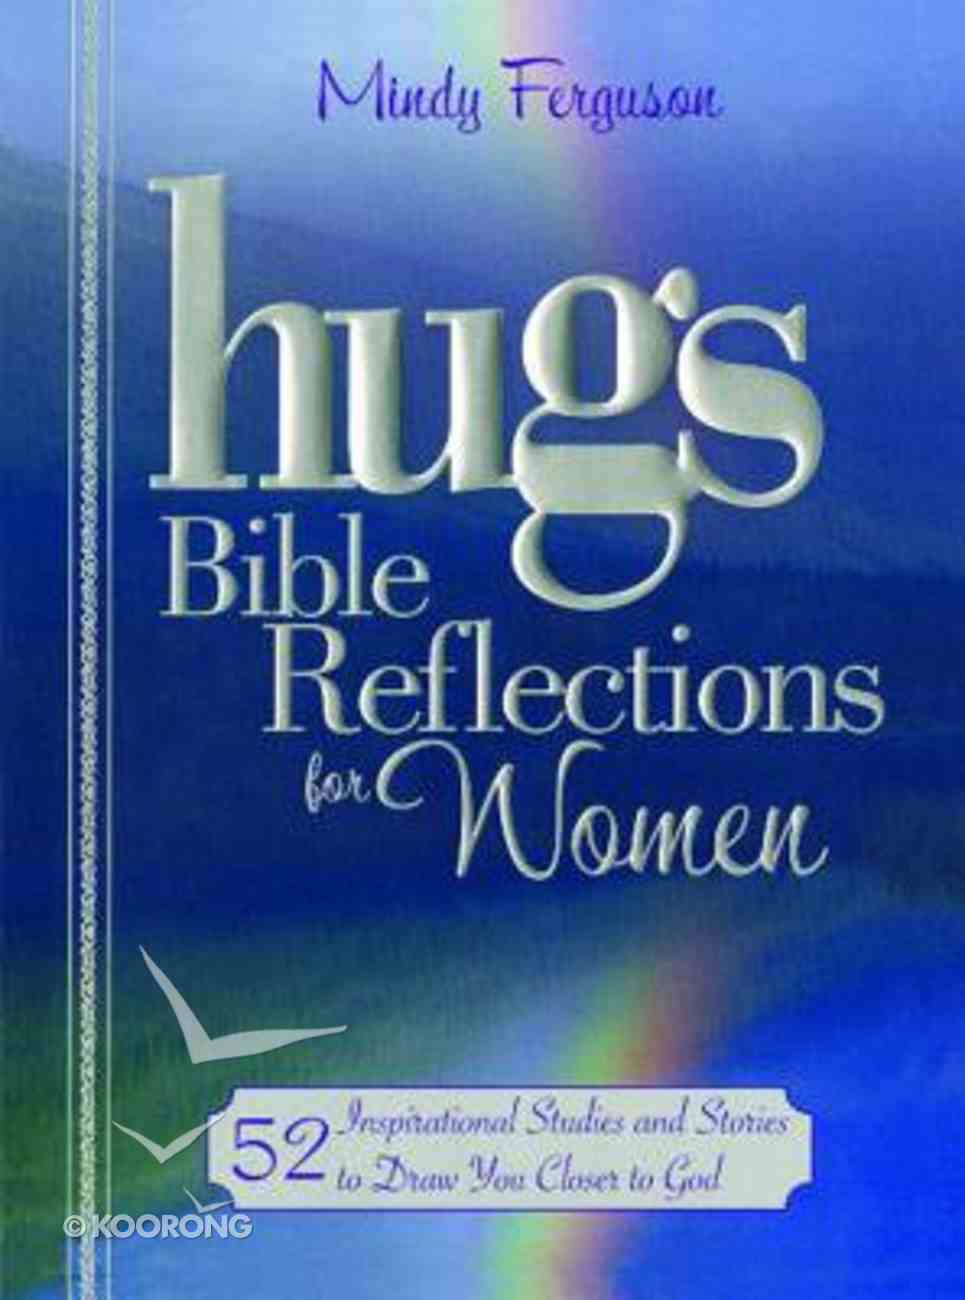 Hugs Bible Reflections For Women Paperback